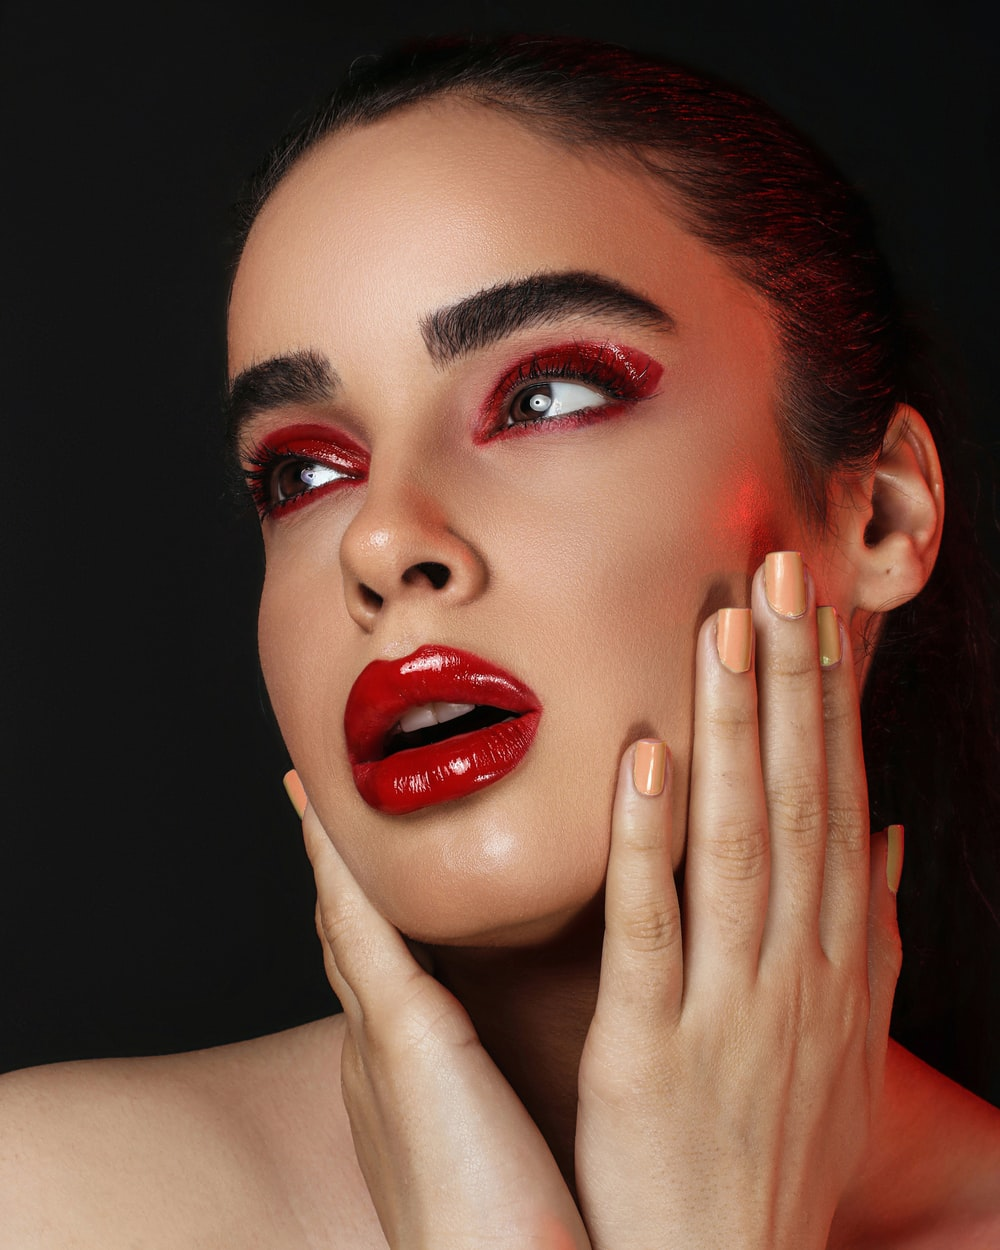 woman with red lipstick and red lipstick